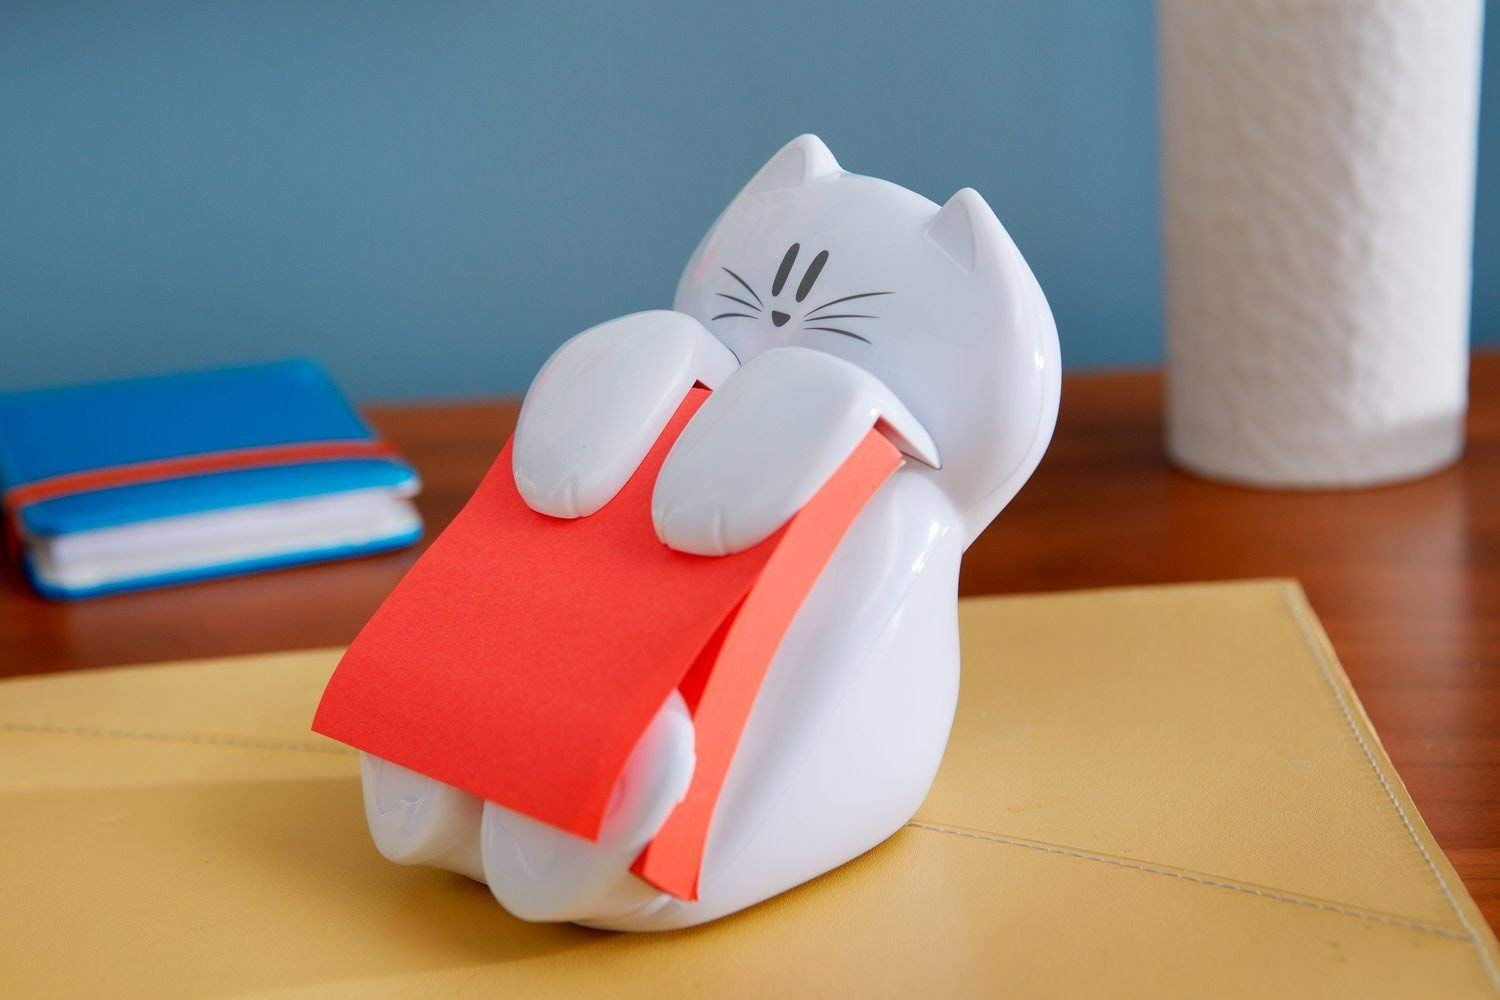 Post-it Cat Figure Pop-up Note Dispenser, 3 inch x 3 inch, (CAT-330), Colors May Vary by Post-it